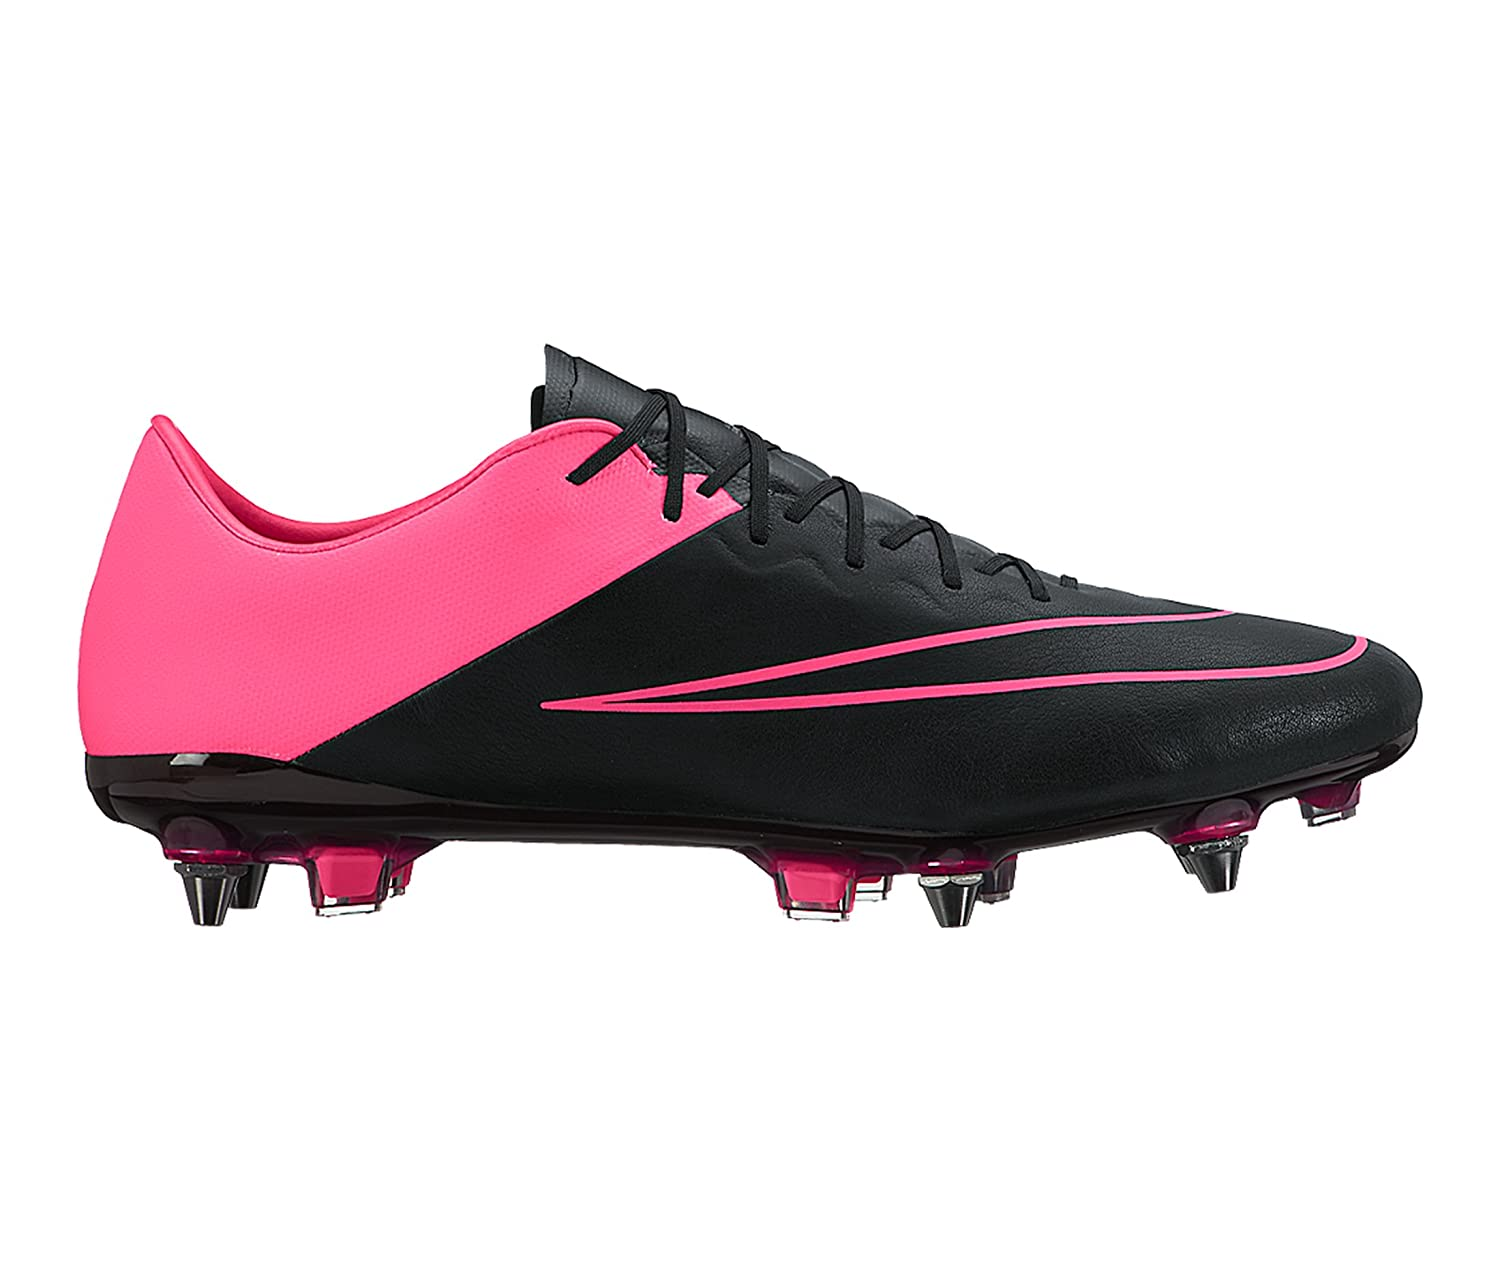 size 40 46086 a5dc8 Nike Men s s Mercurial Vapor X Lthr Sg-pro Football Boots  Amazon.co.uk   Shoes   Bags